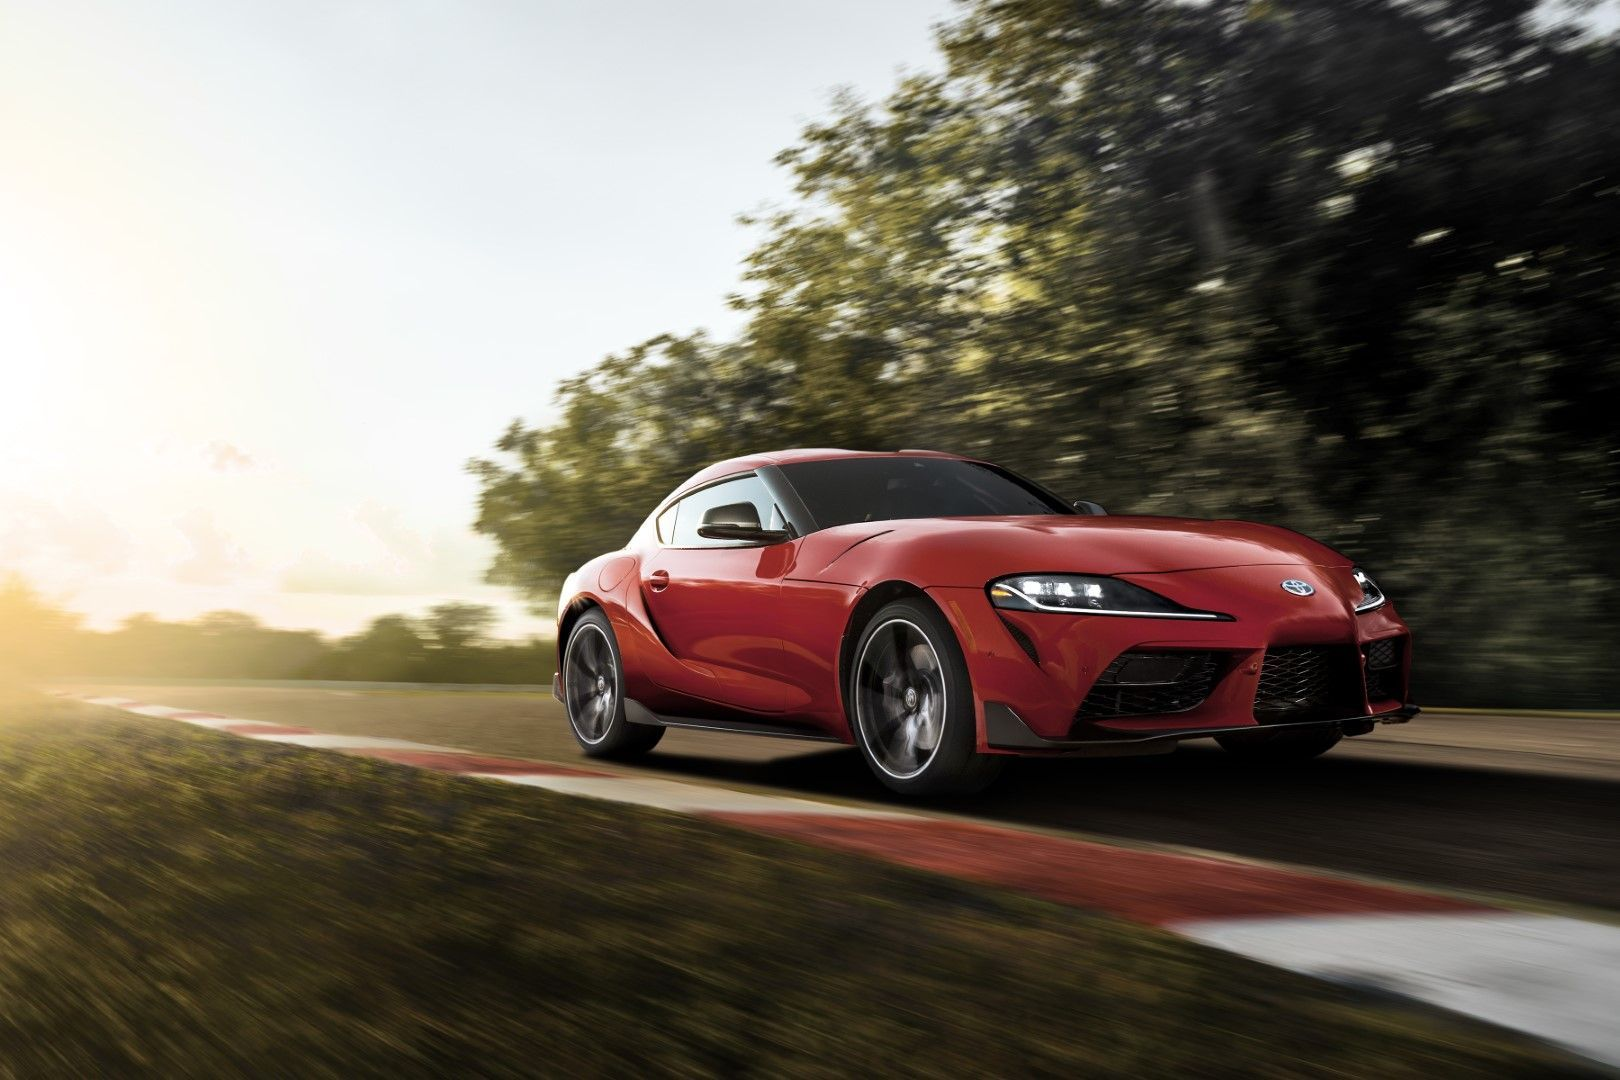 2020 Toyota Supra North American Model 3 0 Liter Turbocharged Inline Six With 335 Hp And 365 Lb Ft Of Torque Toyota Supra Toyota Supra New Toyota Supra